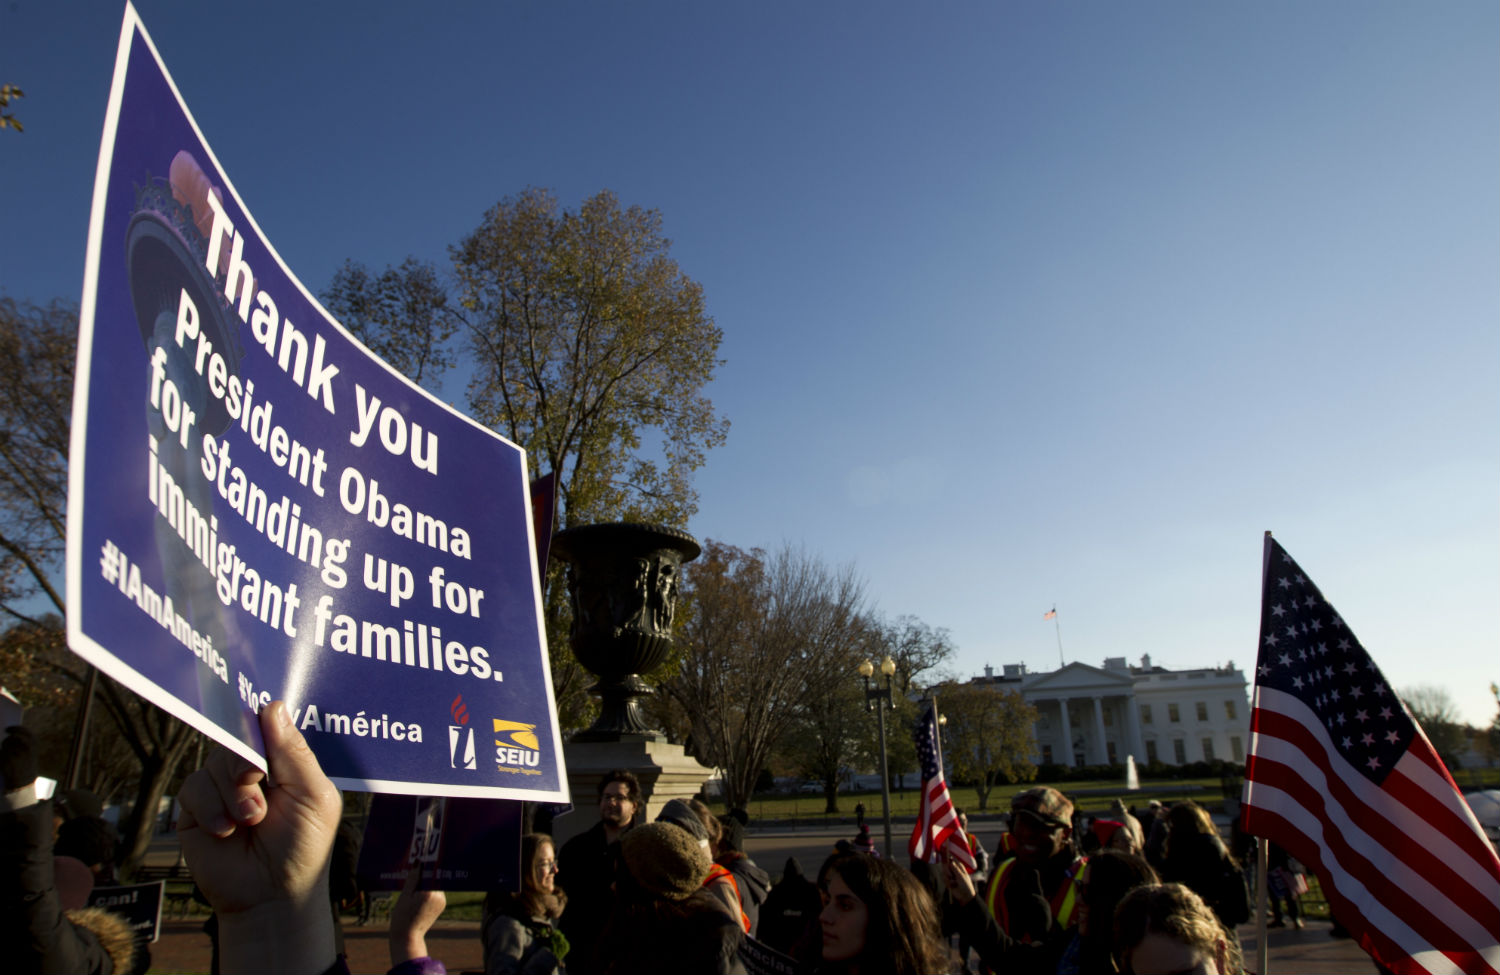 Supporters-of-immigration-reform